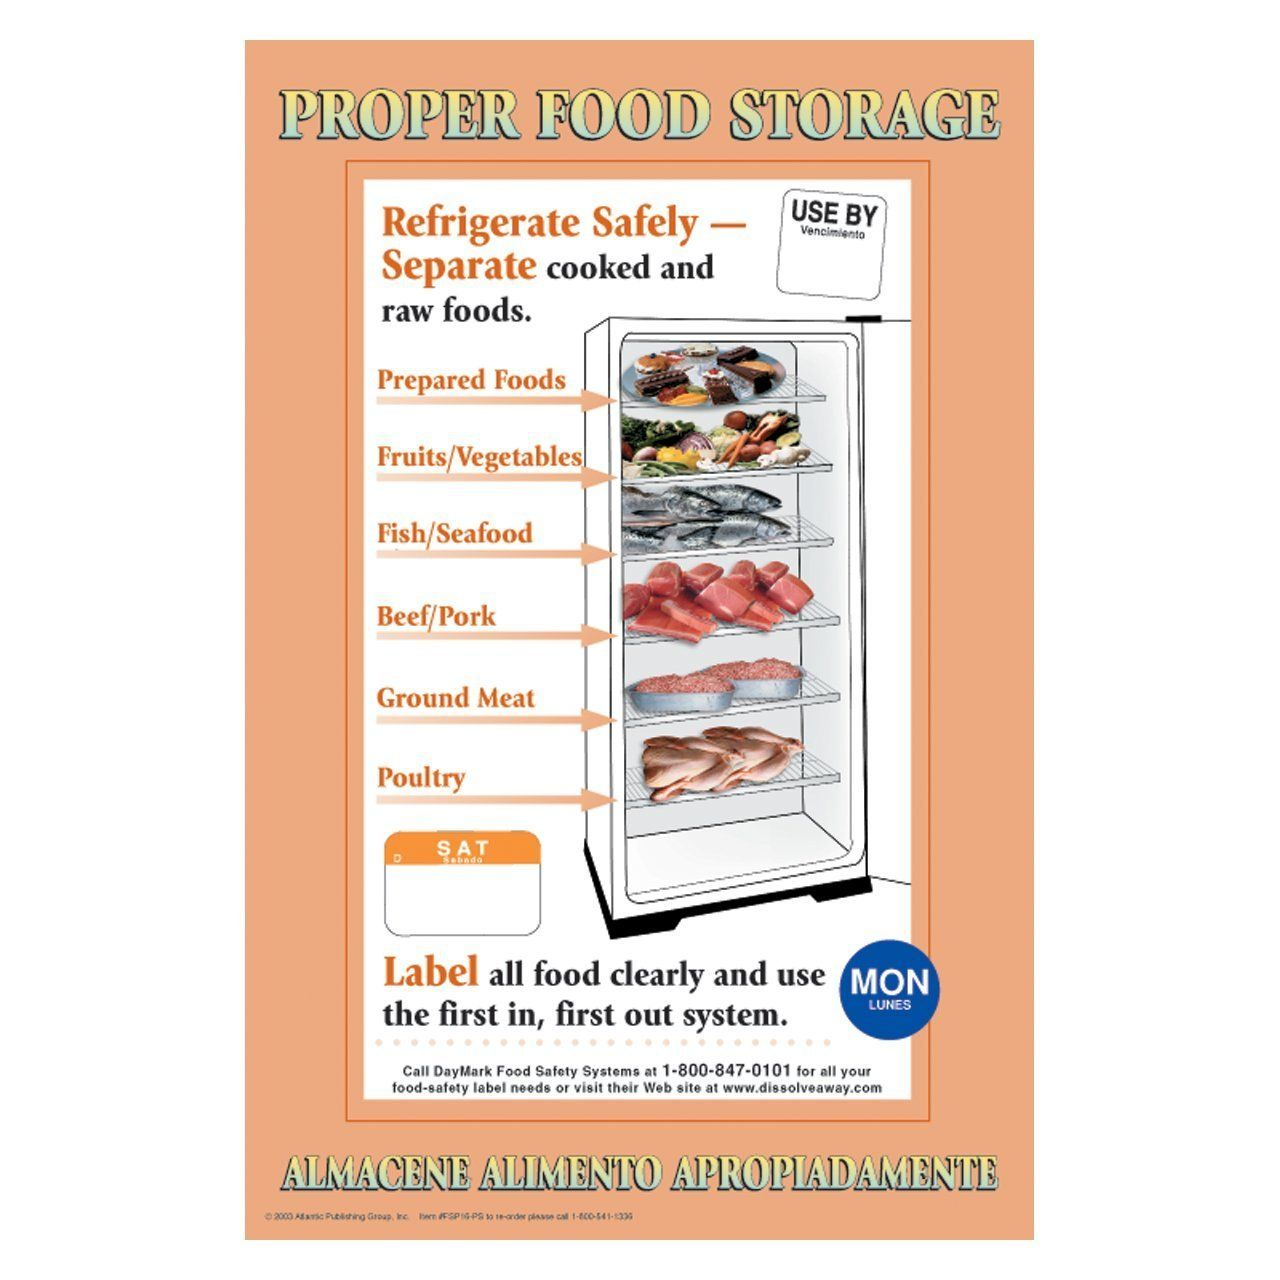 Proper Food Storage Poster Interesting About Remodel Home Design Planning with Proper Food